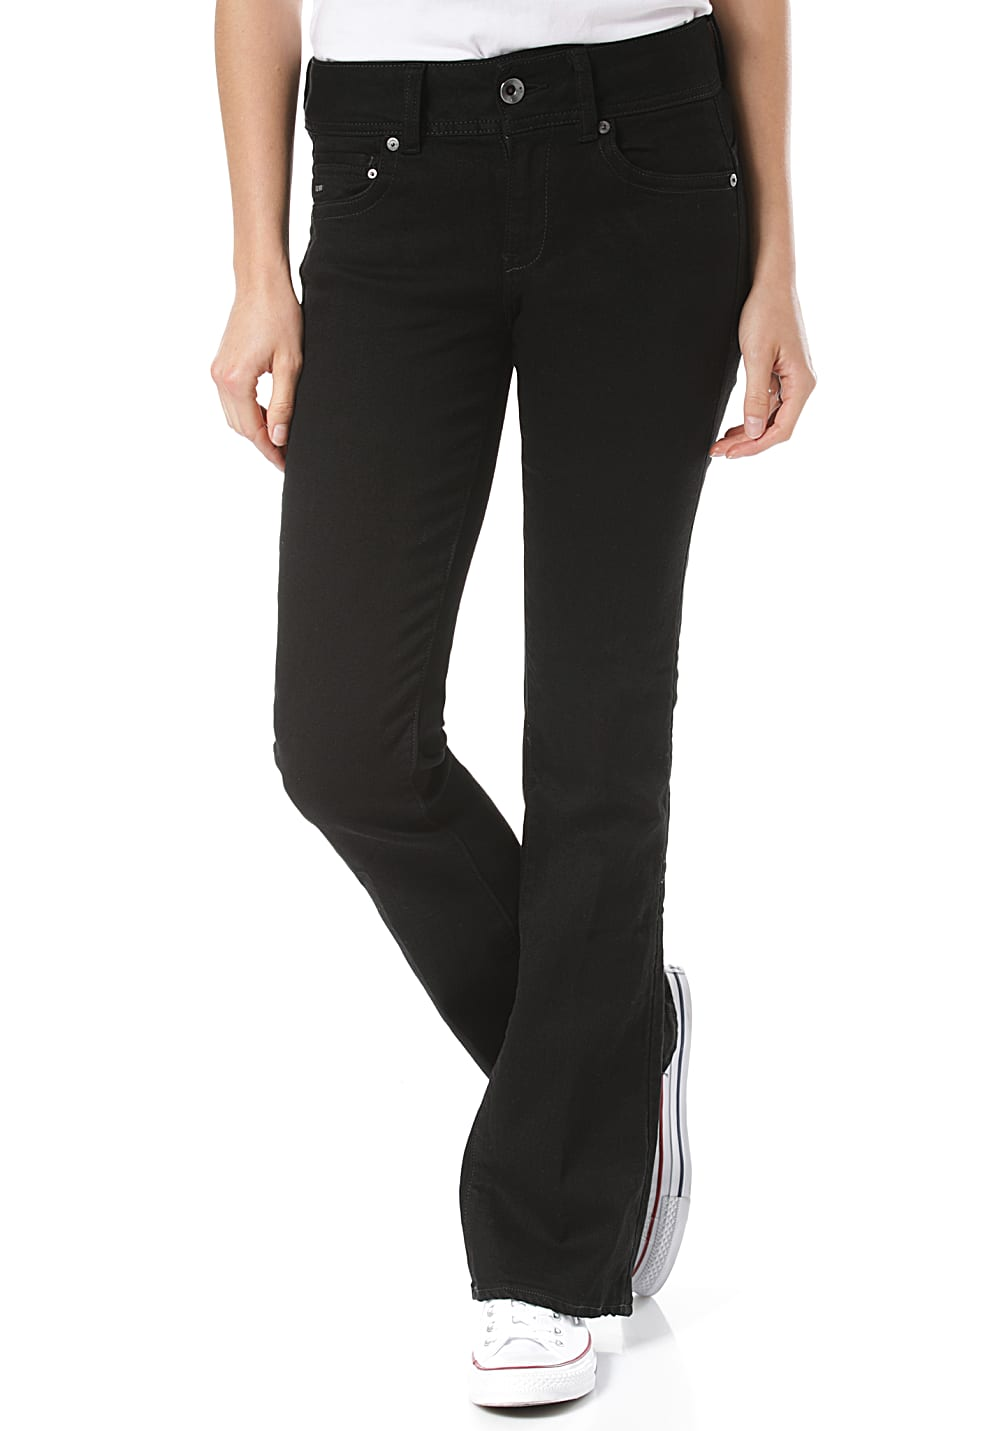 G-STAR RAW Midge Mid Bootcut Elto Nero Black F Superstretch - Jeans für Damen - Schwarz